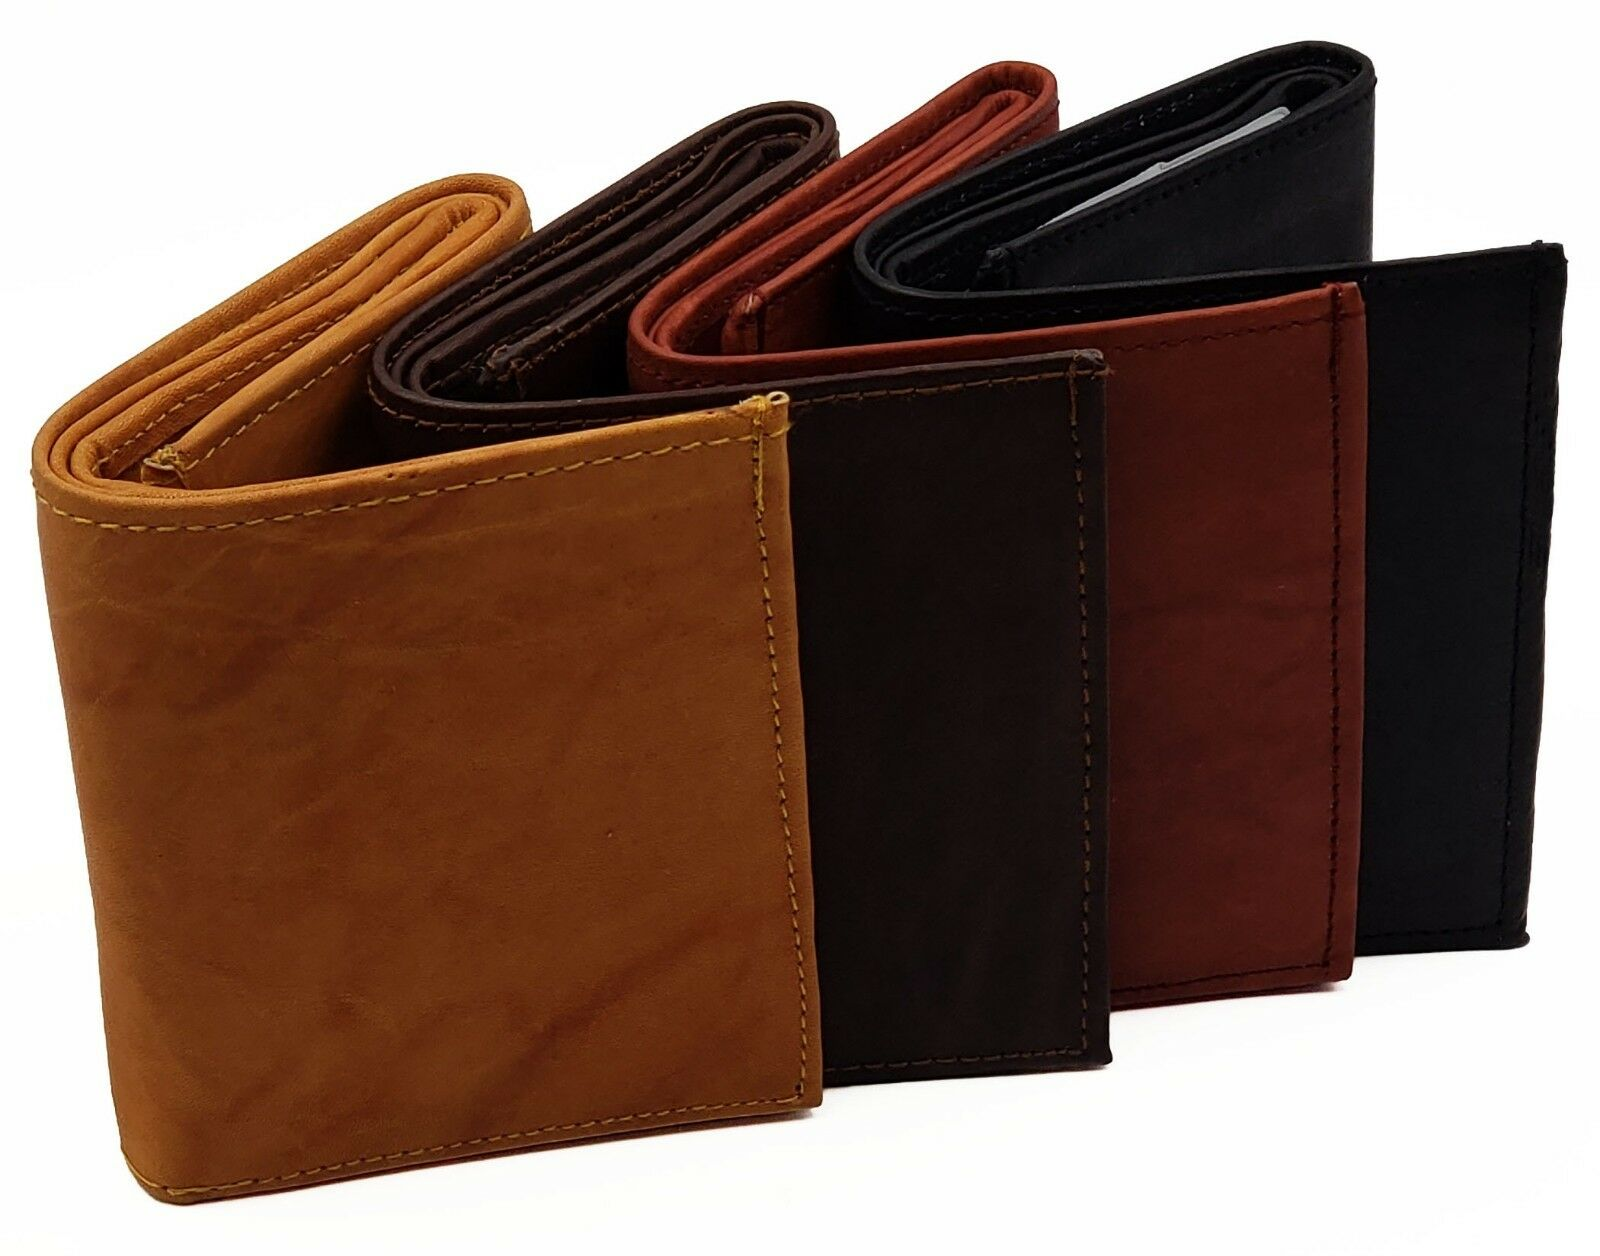 AG Wallets MENS Trifold RFID Wallet Cowhide Leather Removable Inserts